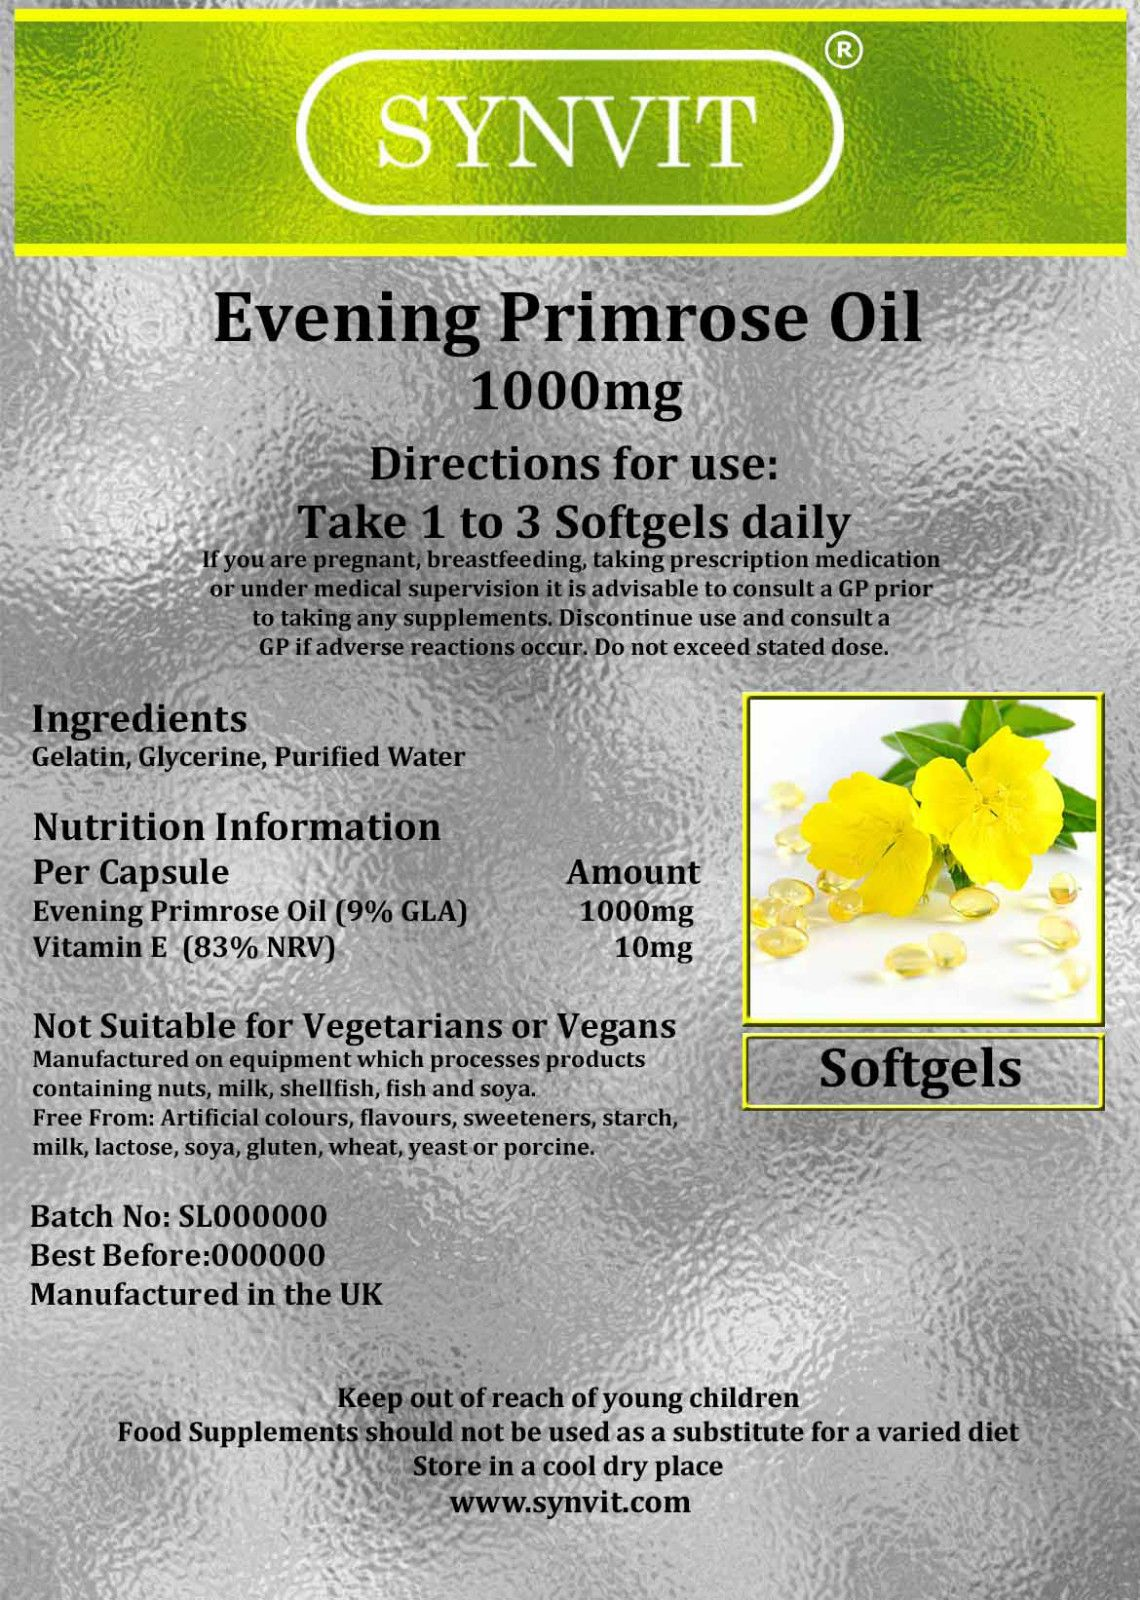 Evening Primrose Oil 1000mg SYNVIT®